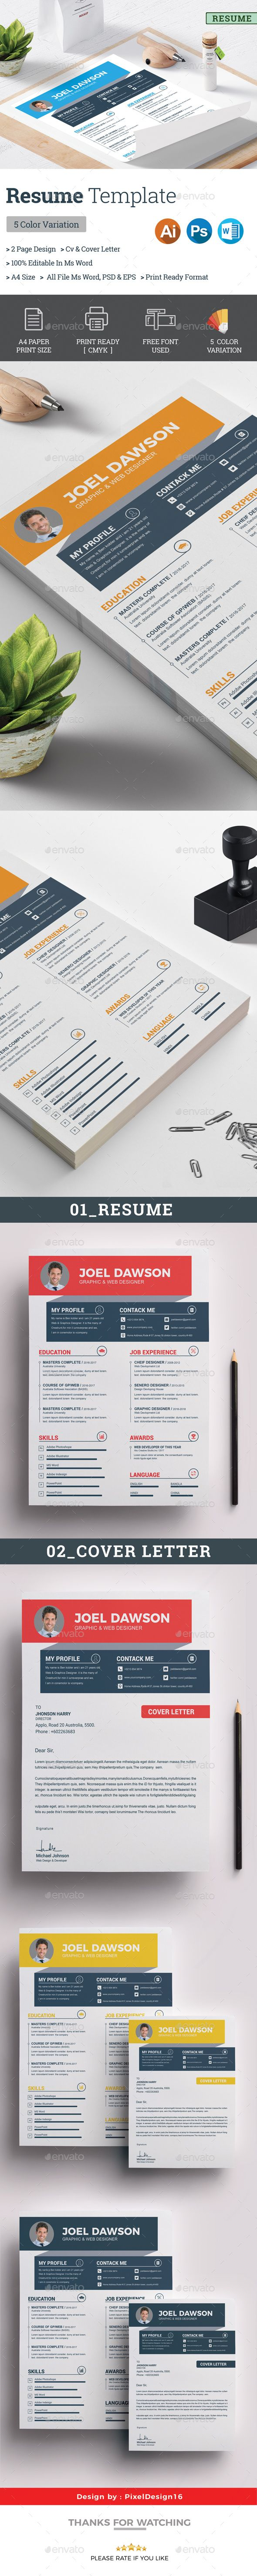 contoh format resume%0A  Resume  Resumes  Stationery